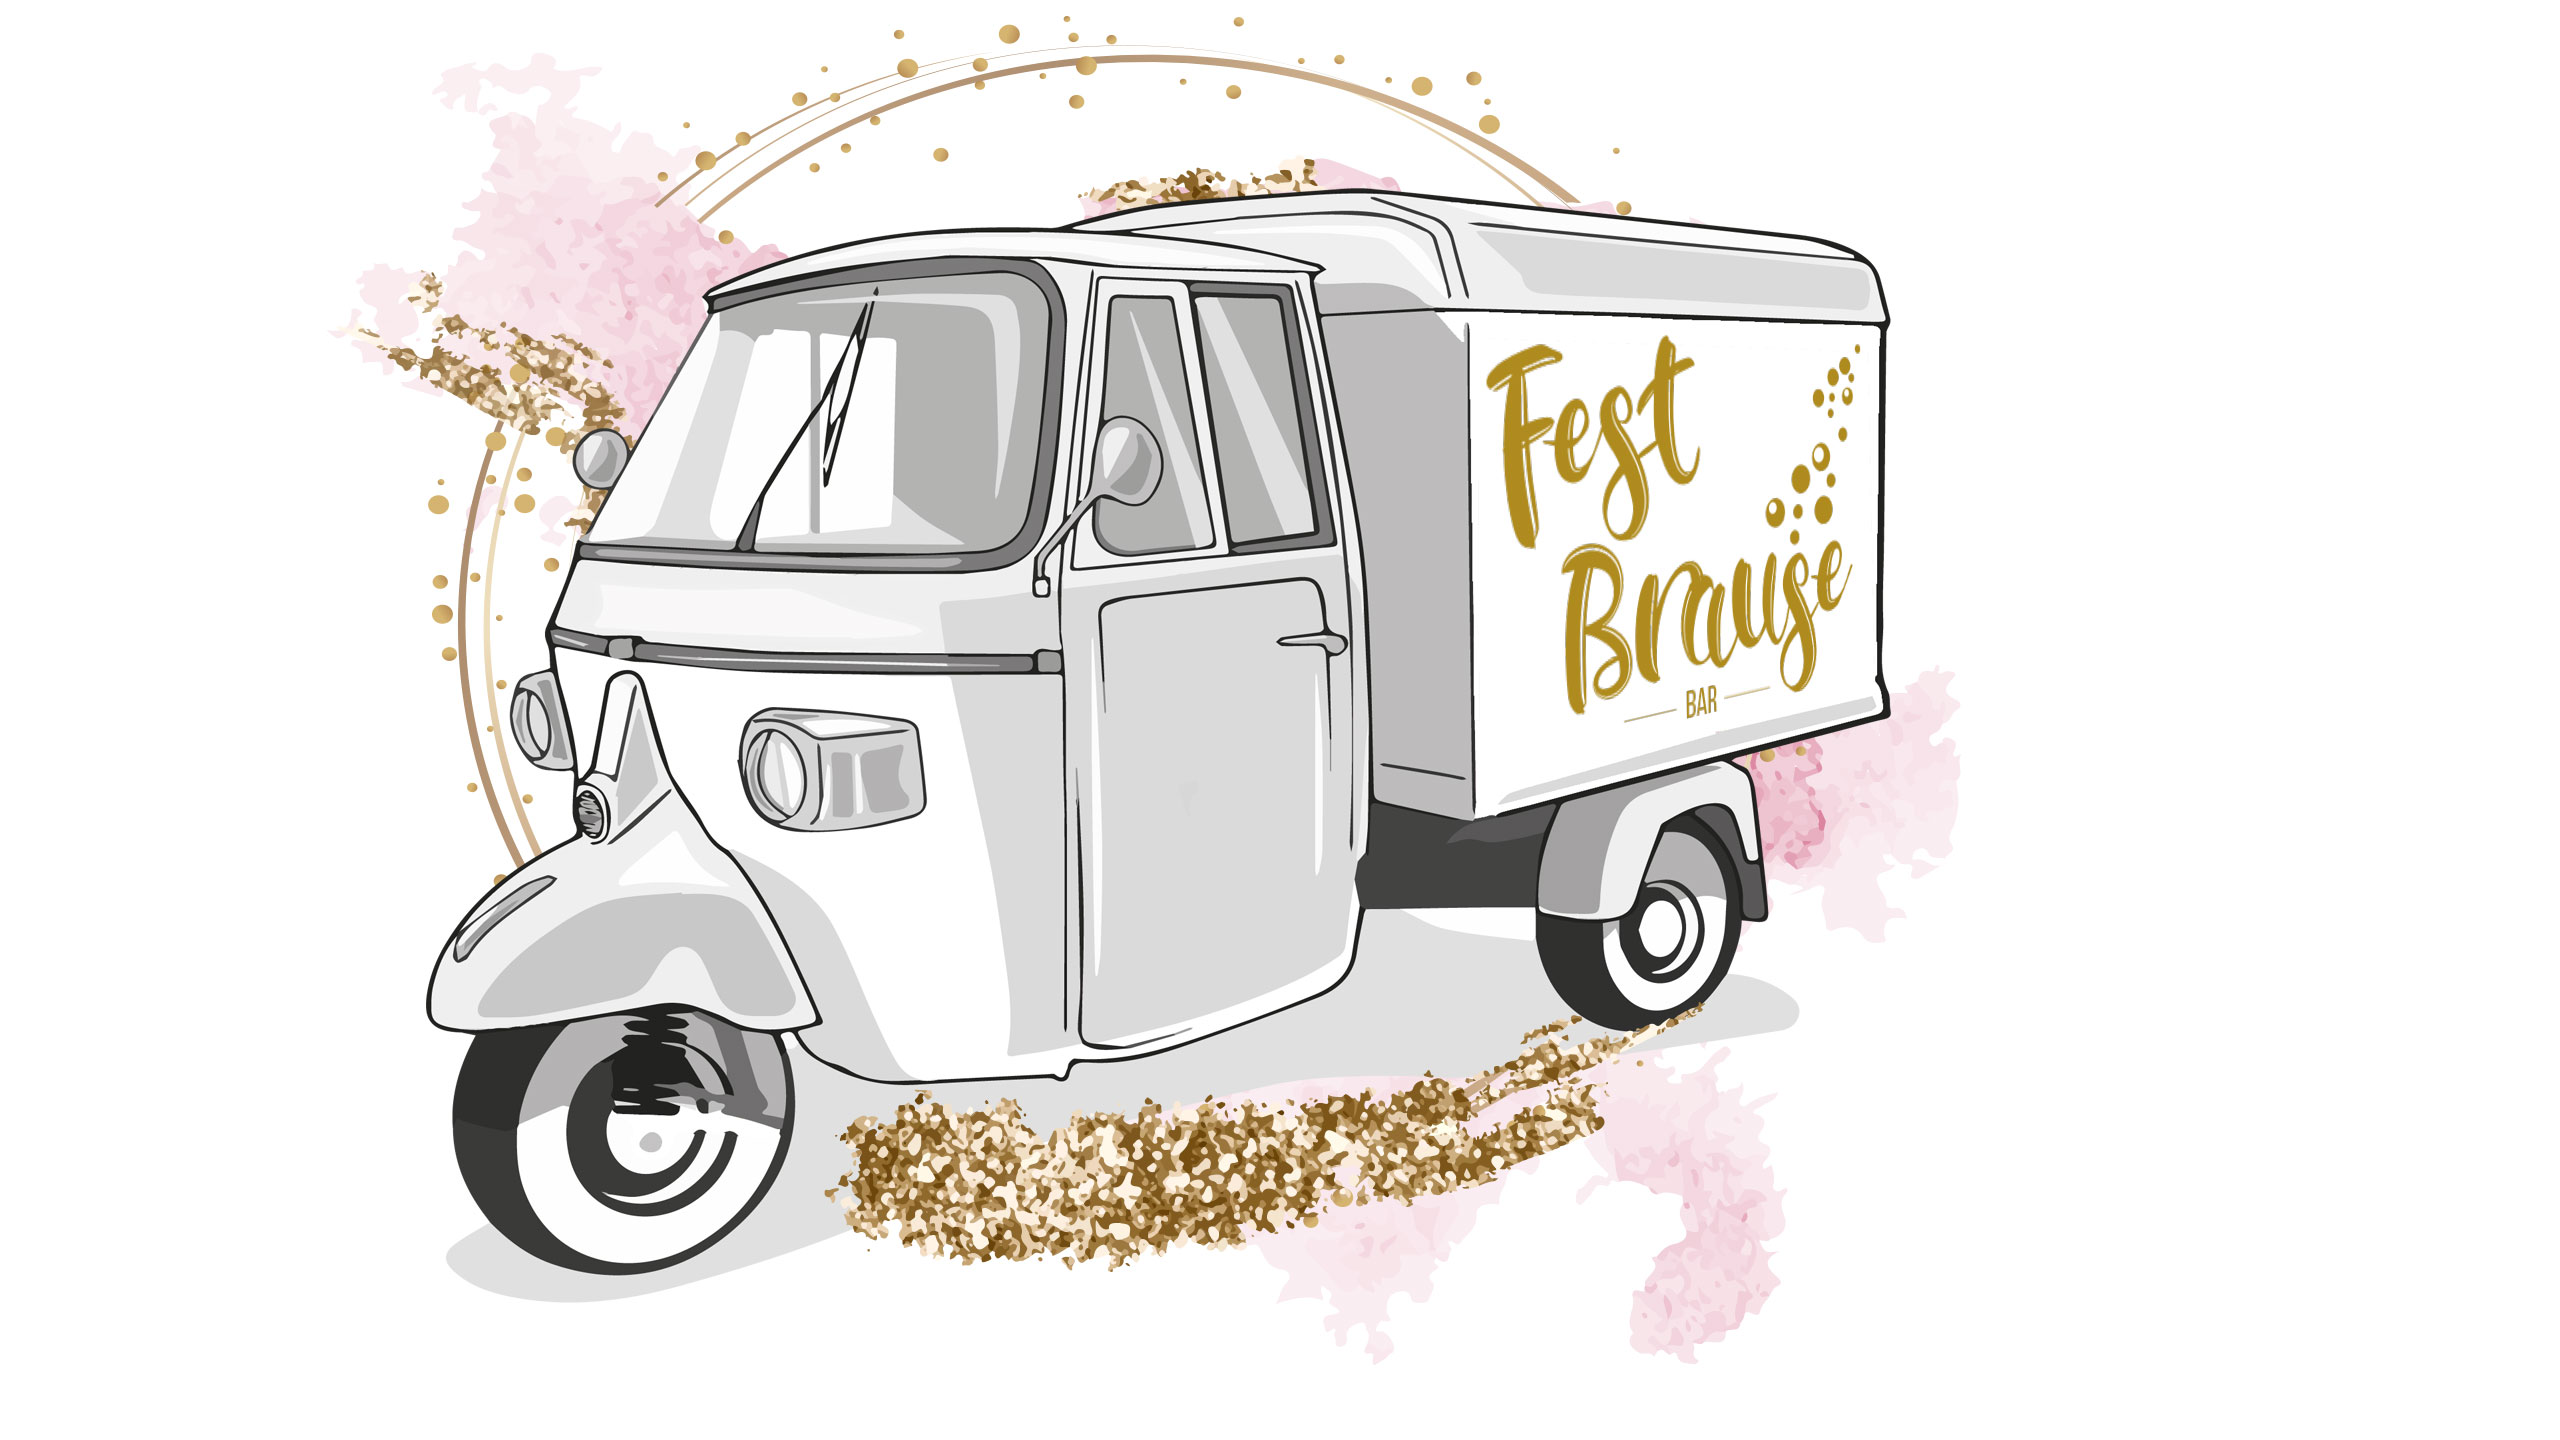 Fest Brause-Bar Unsere Mobile Prosecco Bar